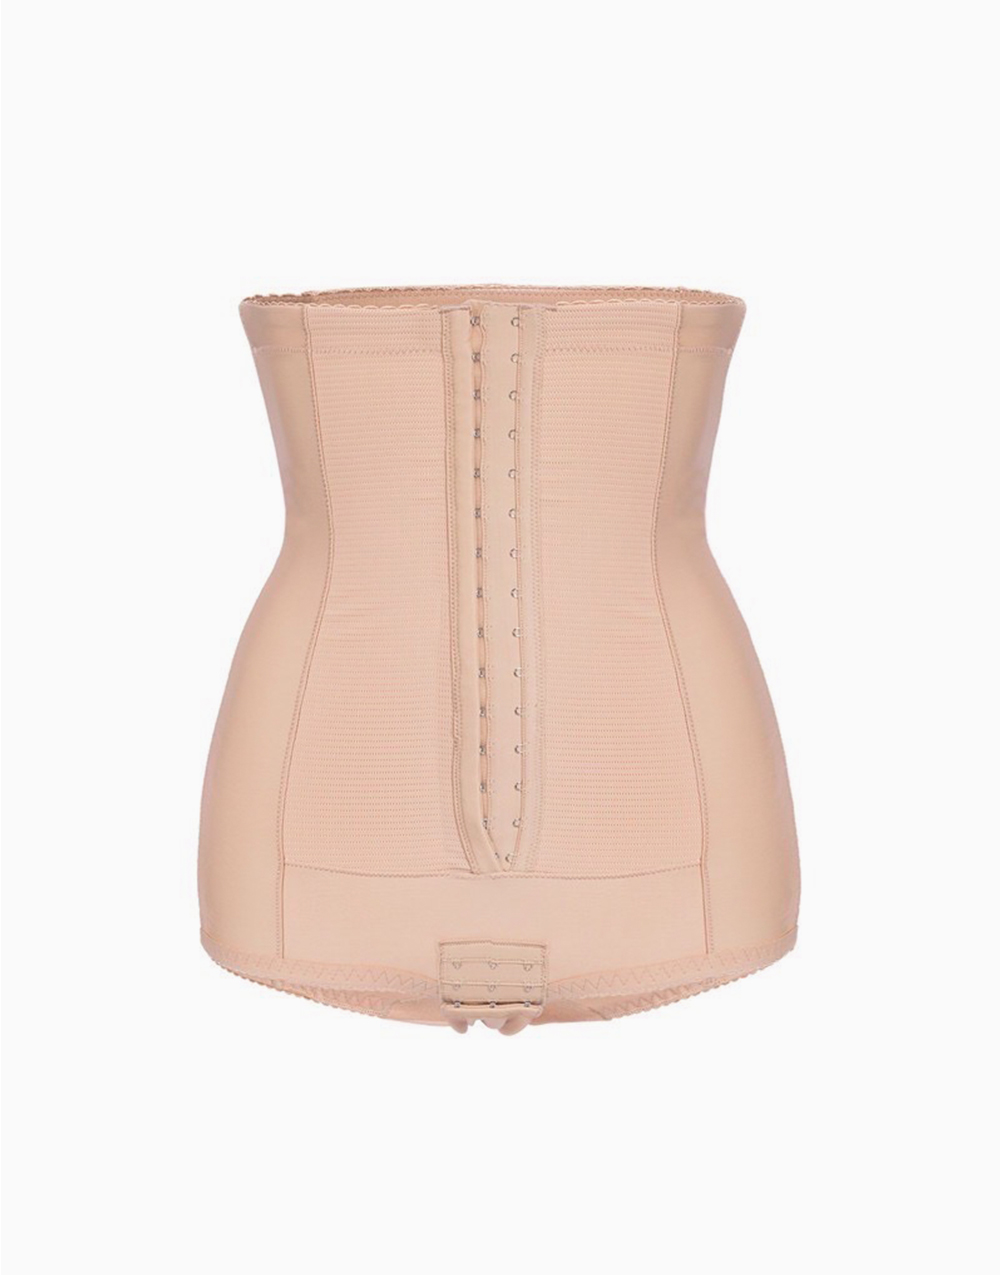 DIANNE Post Partum Recovery Shapewear - Nude by Shapewear Solutions | Medium